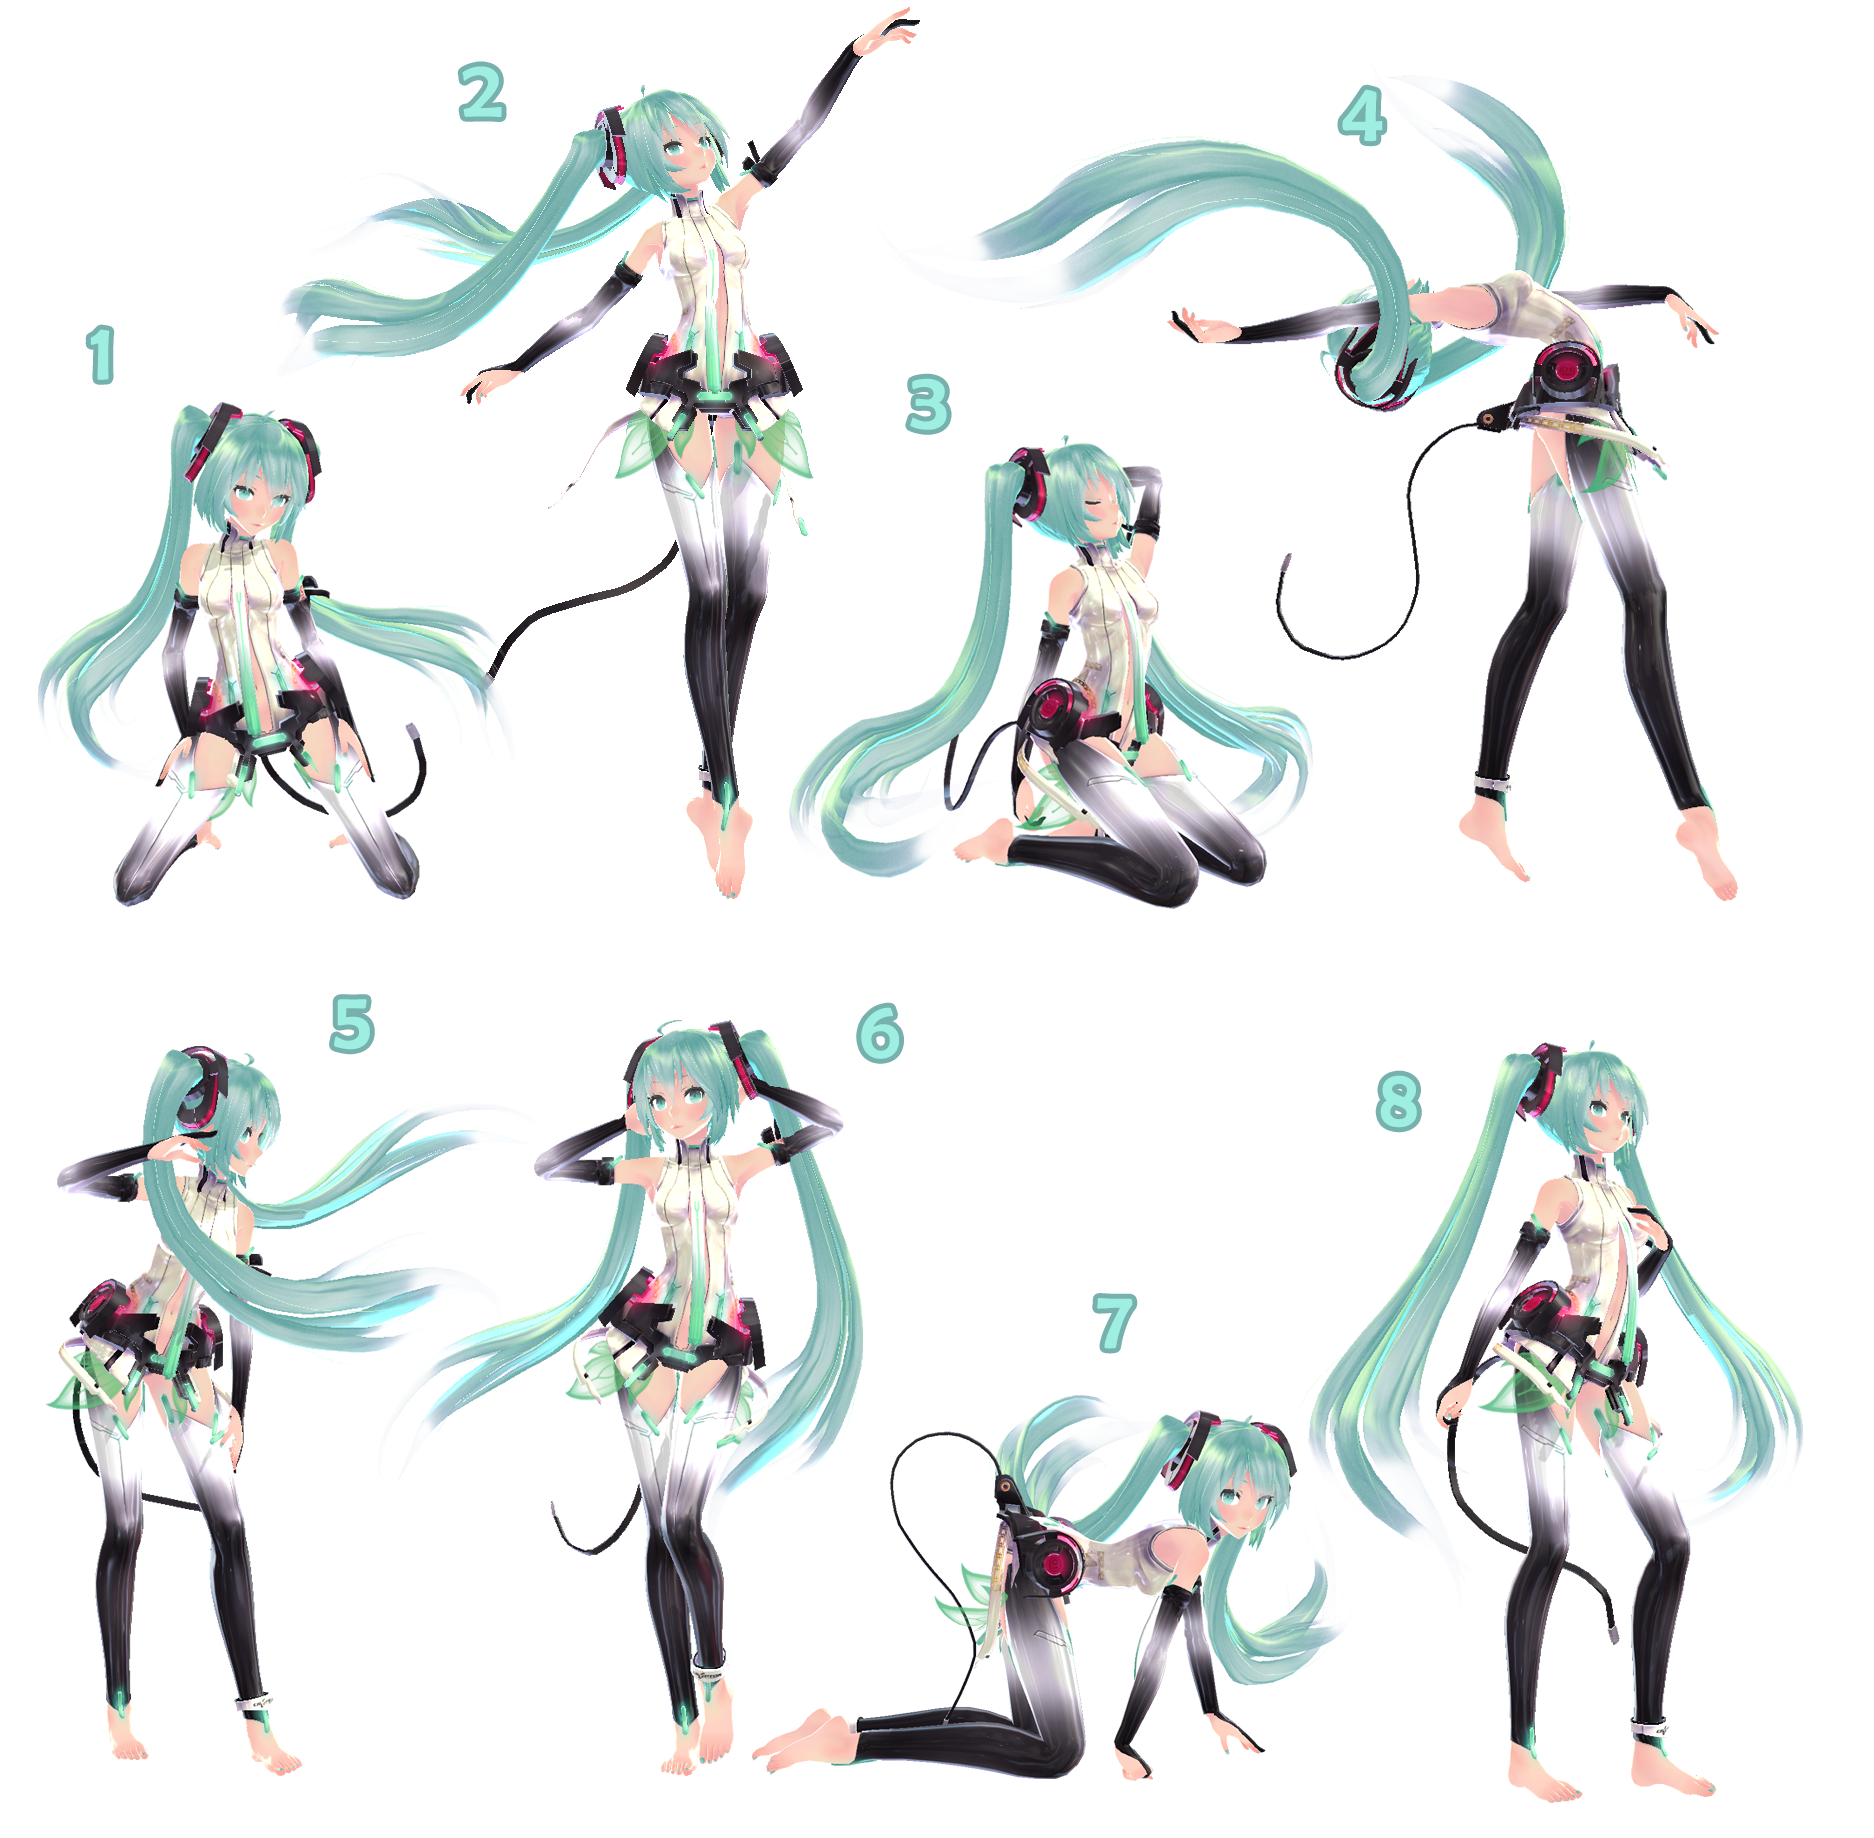 MMD] Pose Pack 1 - DL by Snorlaxin on DeviantArt